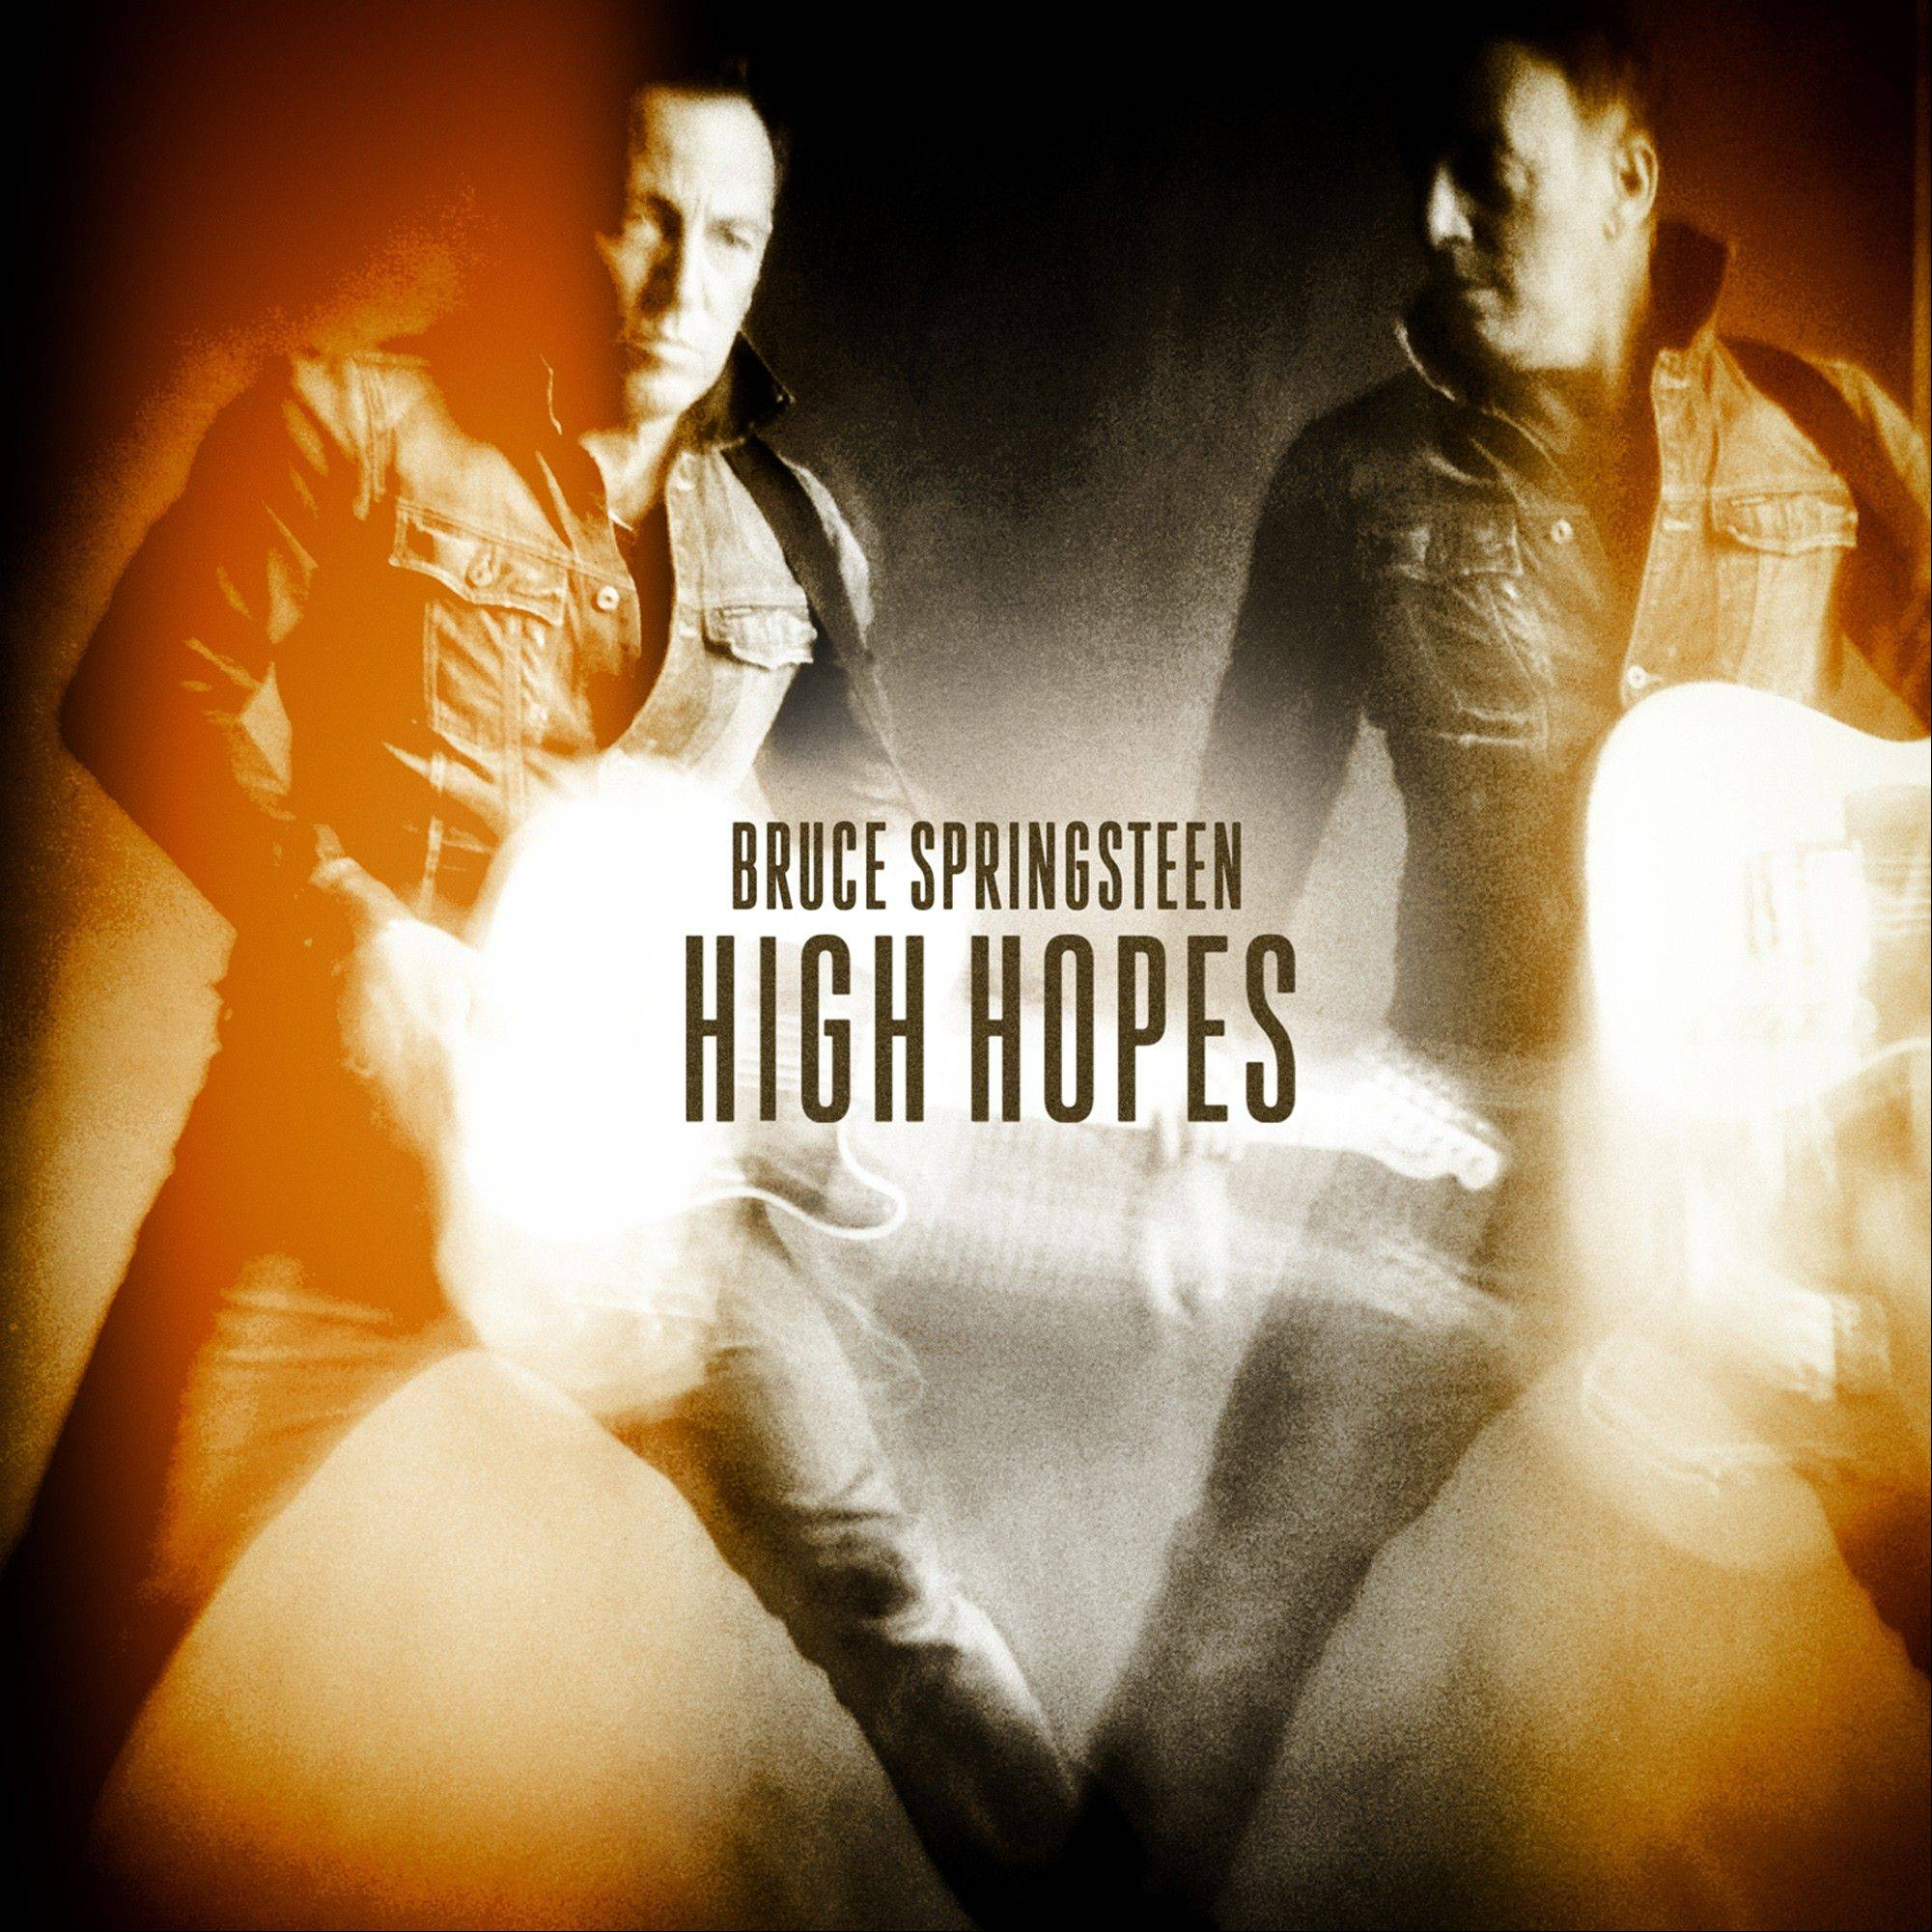 Bruce Springsteen�s �High Hopes� album features a collection of covers and leftovers from the last decade.